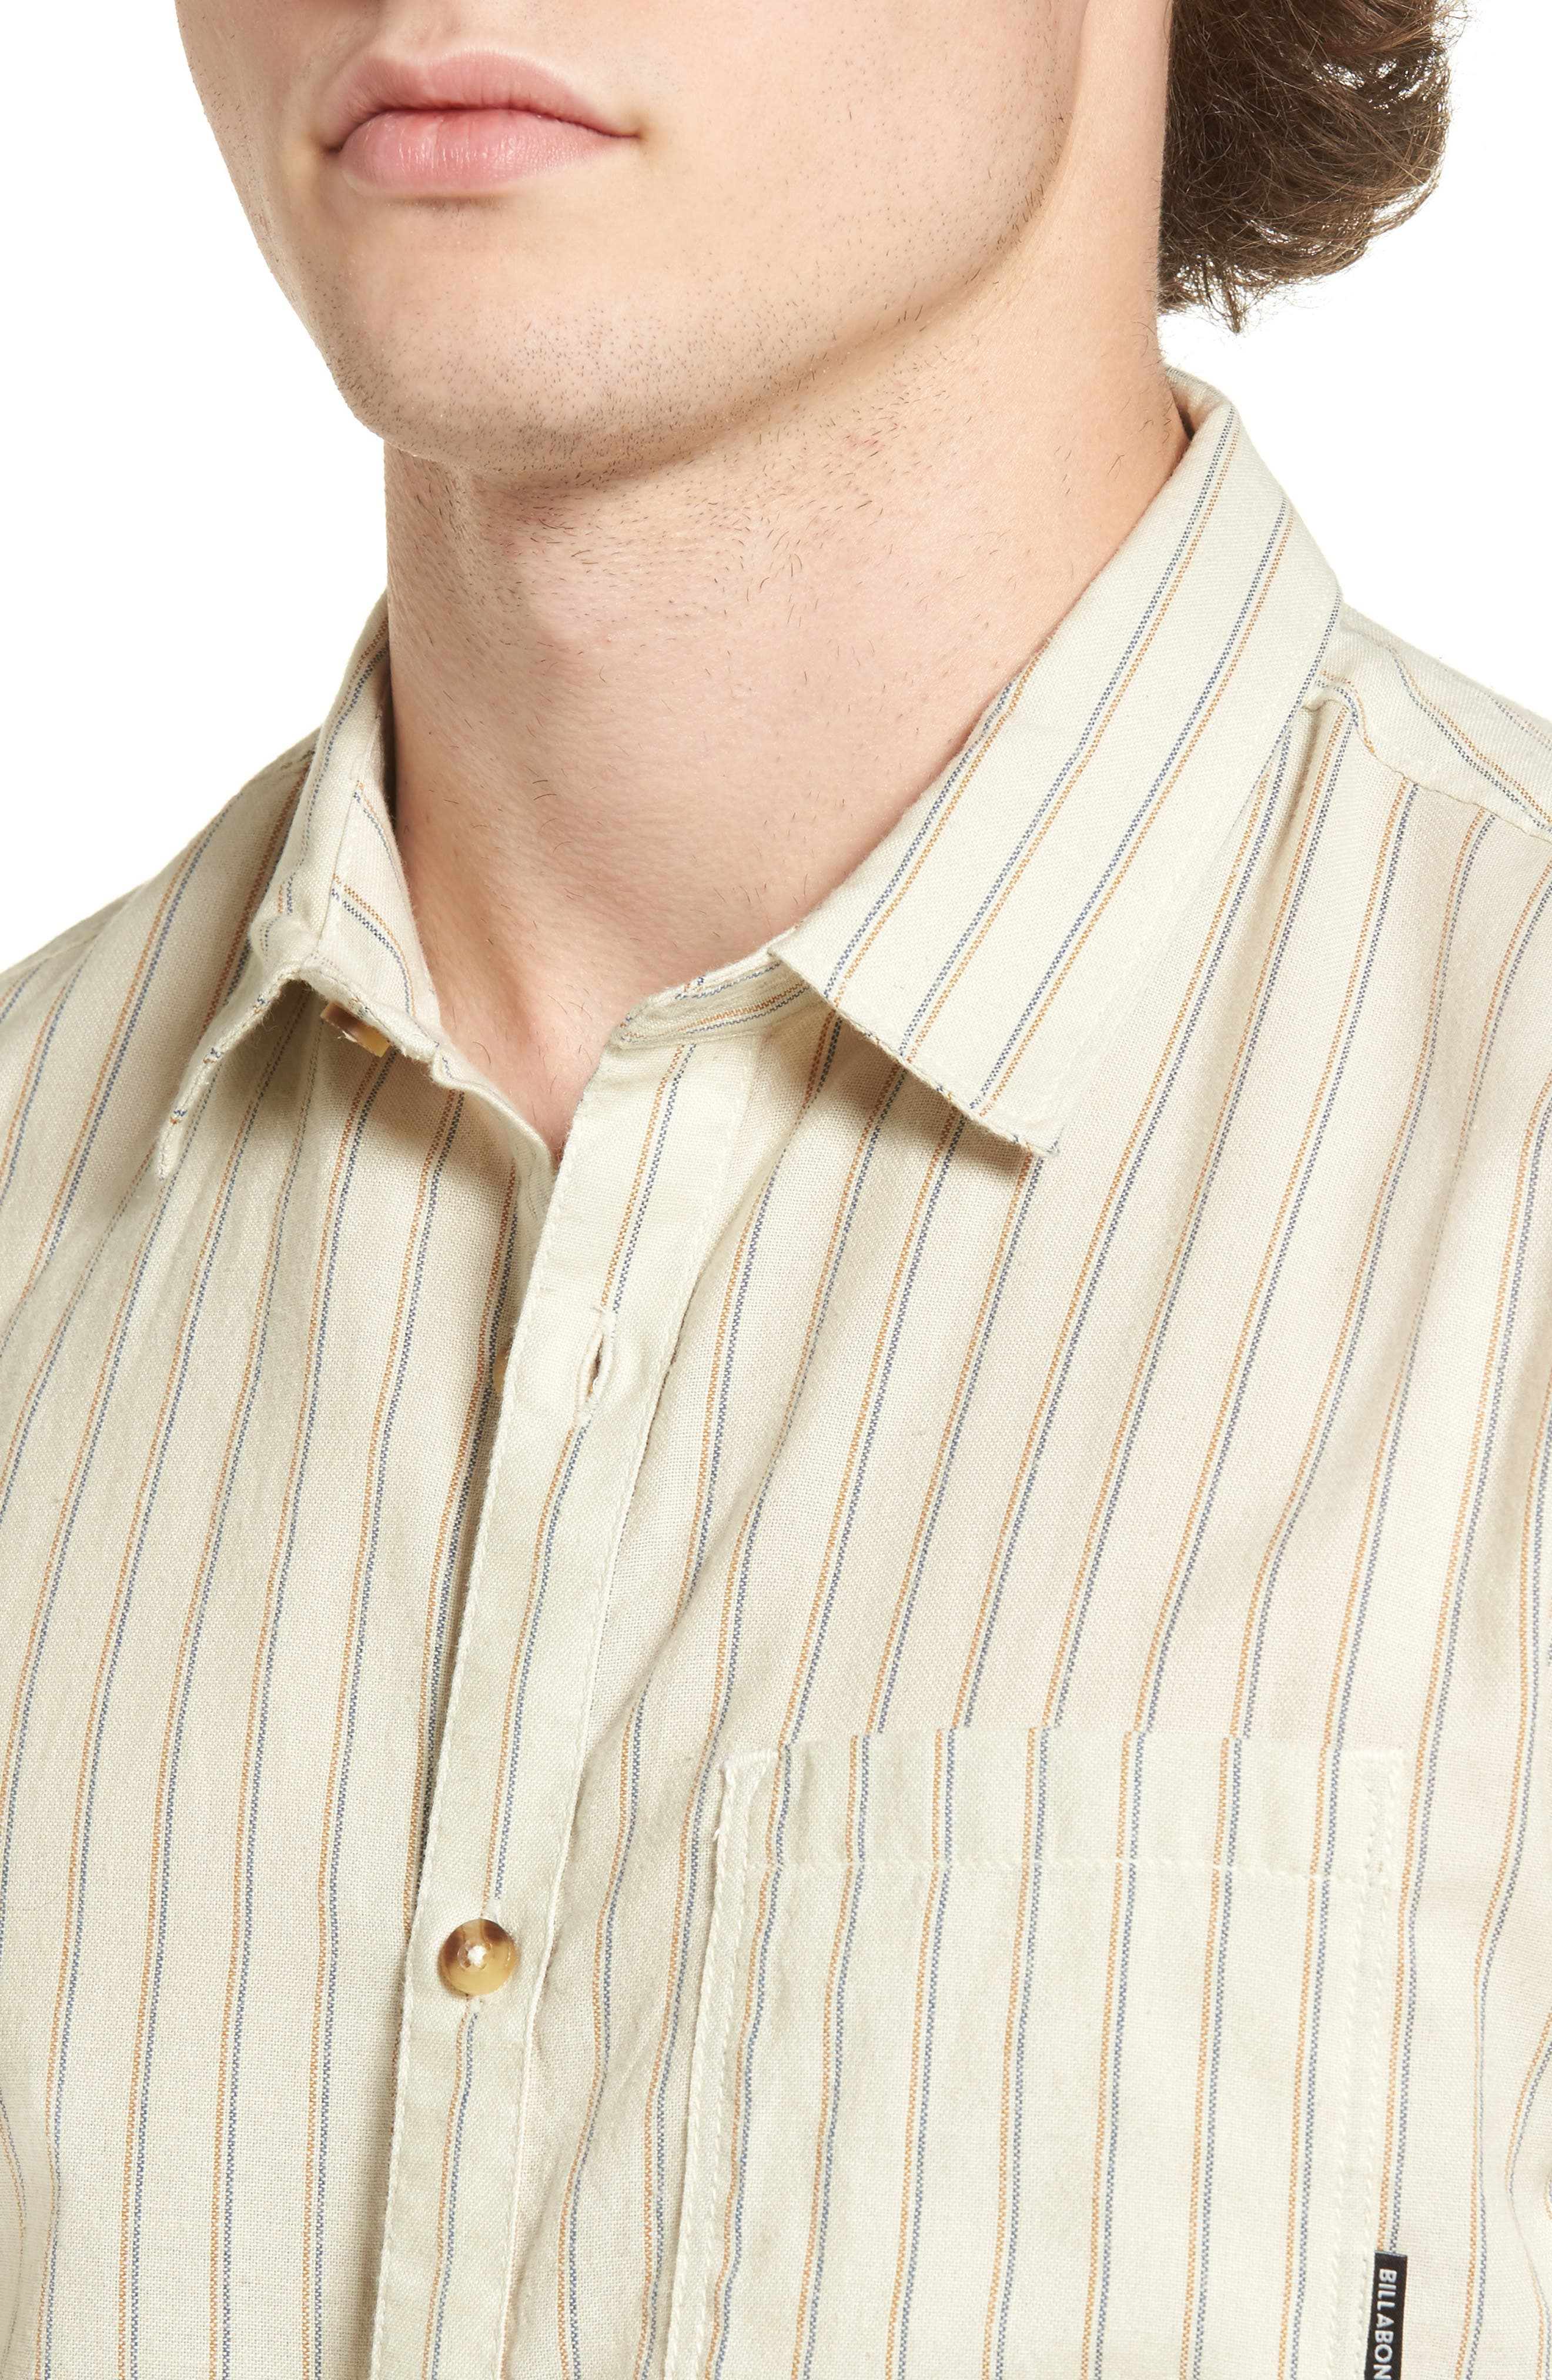 Kelso Tailored Fit Stripe Shirt,                             Alternate thumbnail 4, color,                             061